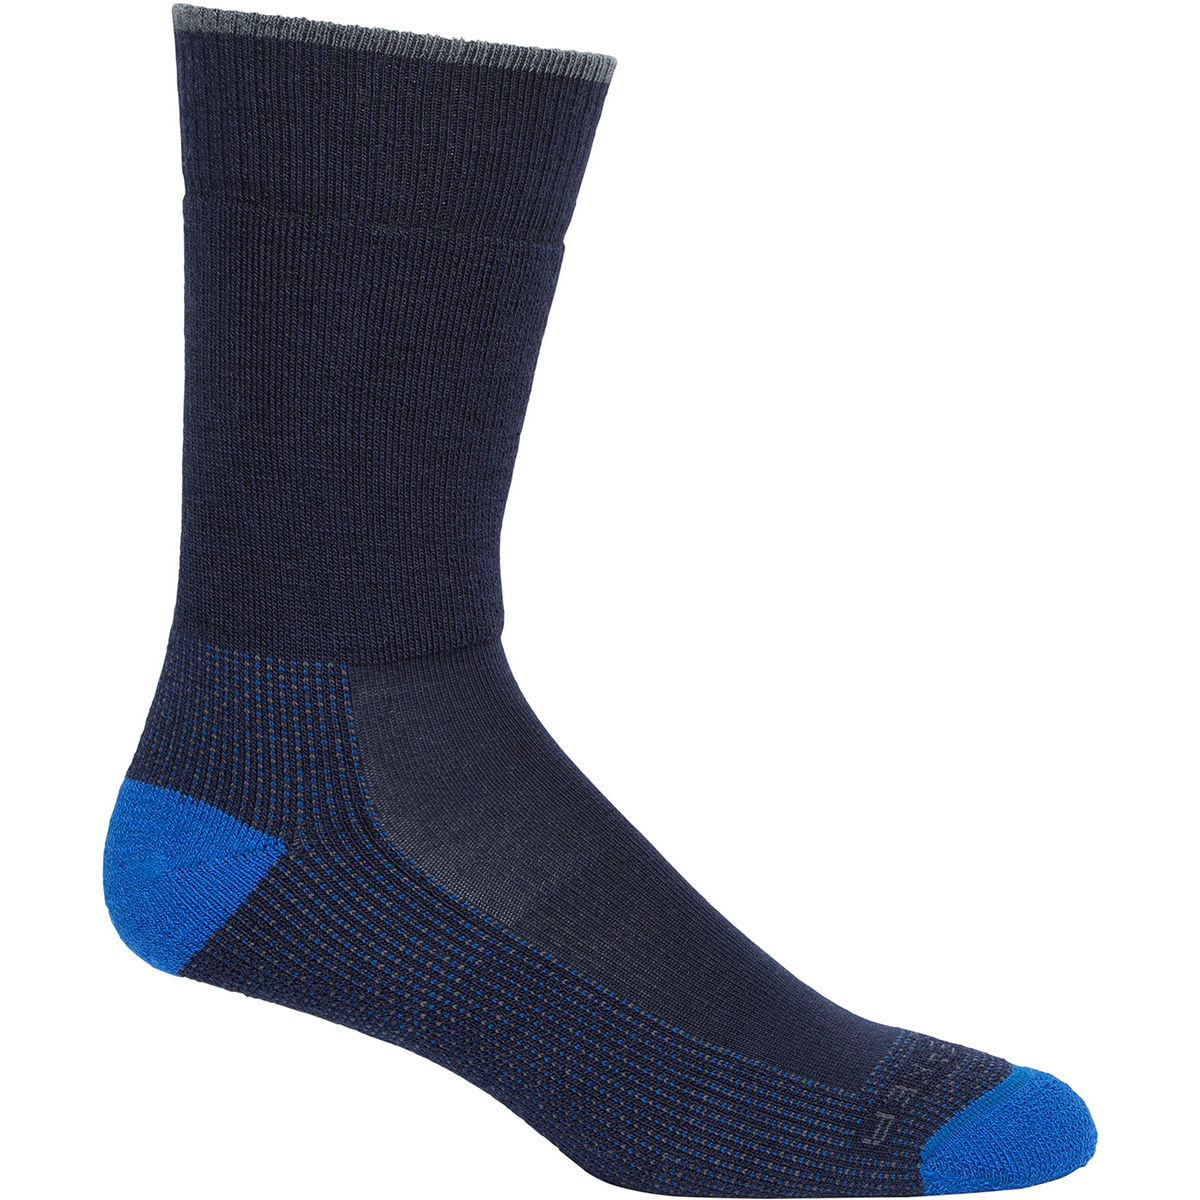 Icebreaker Icebreaker Hike Crew Medium Cushion Socks   Socks